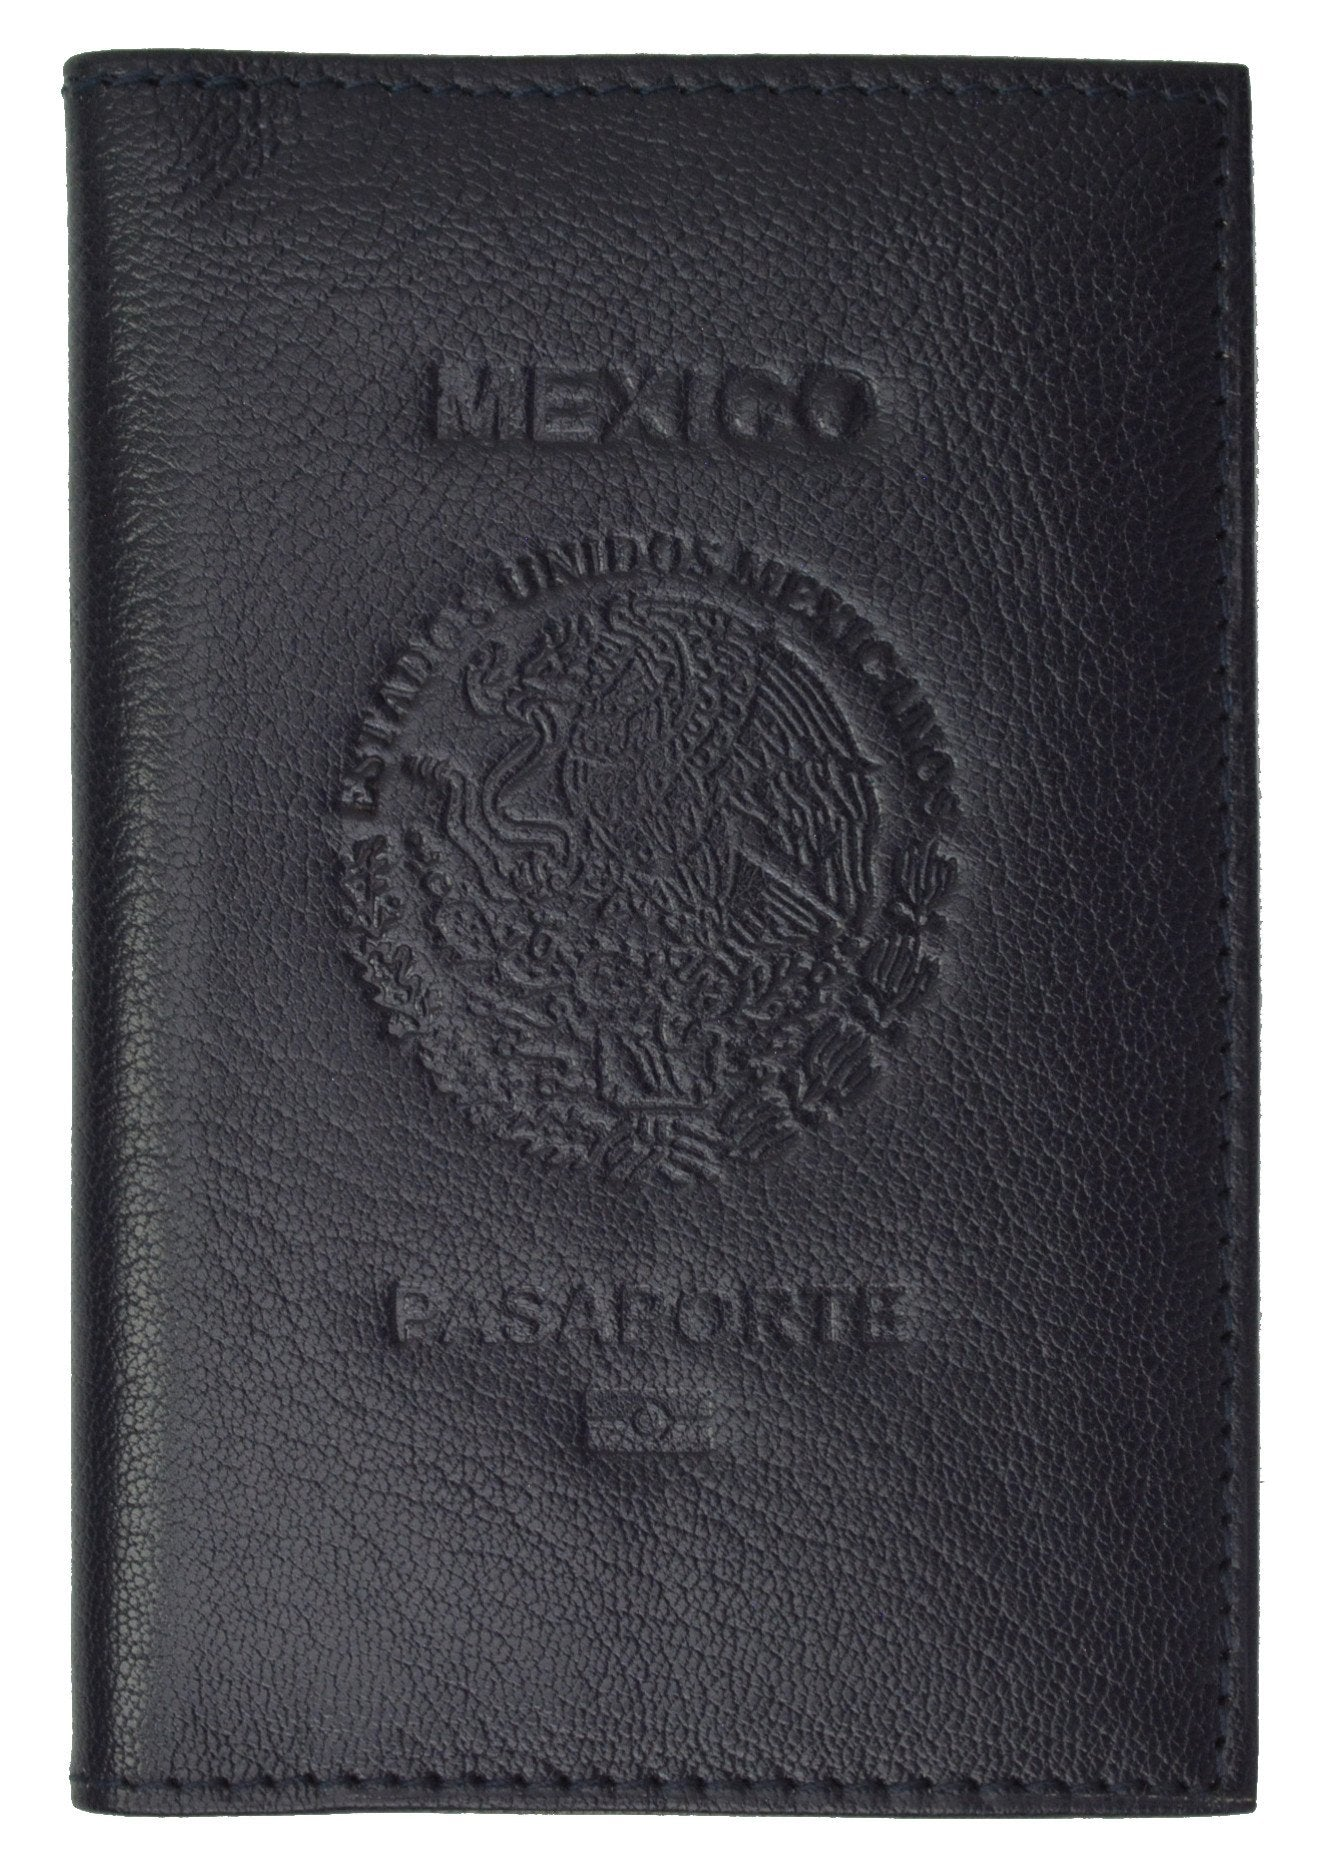 f6e6da99baf6 Mexican Passport Cover Genuine Leather Travel Wallet with Credit ...